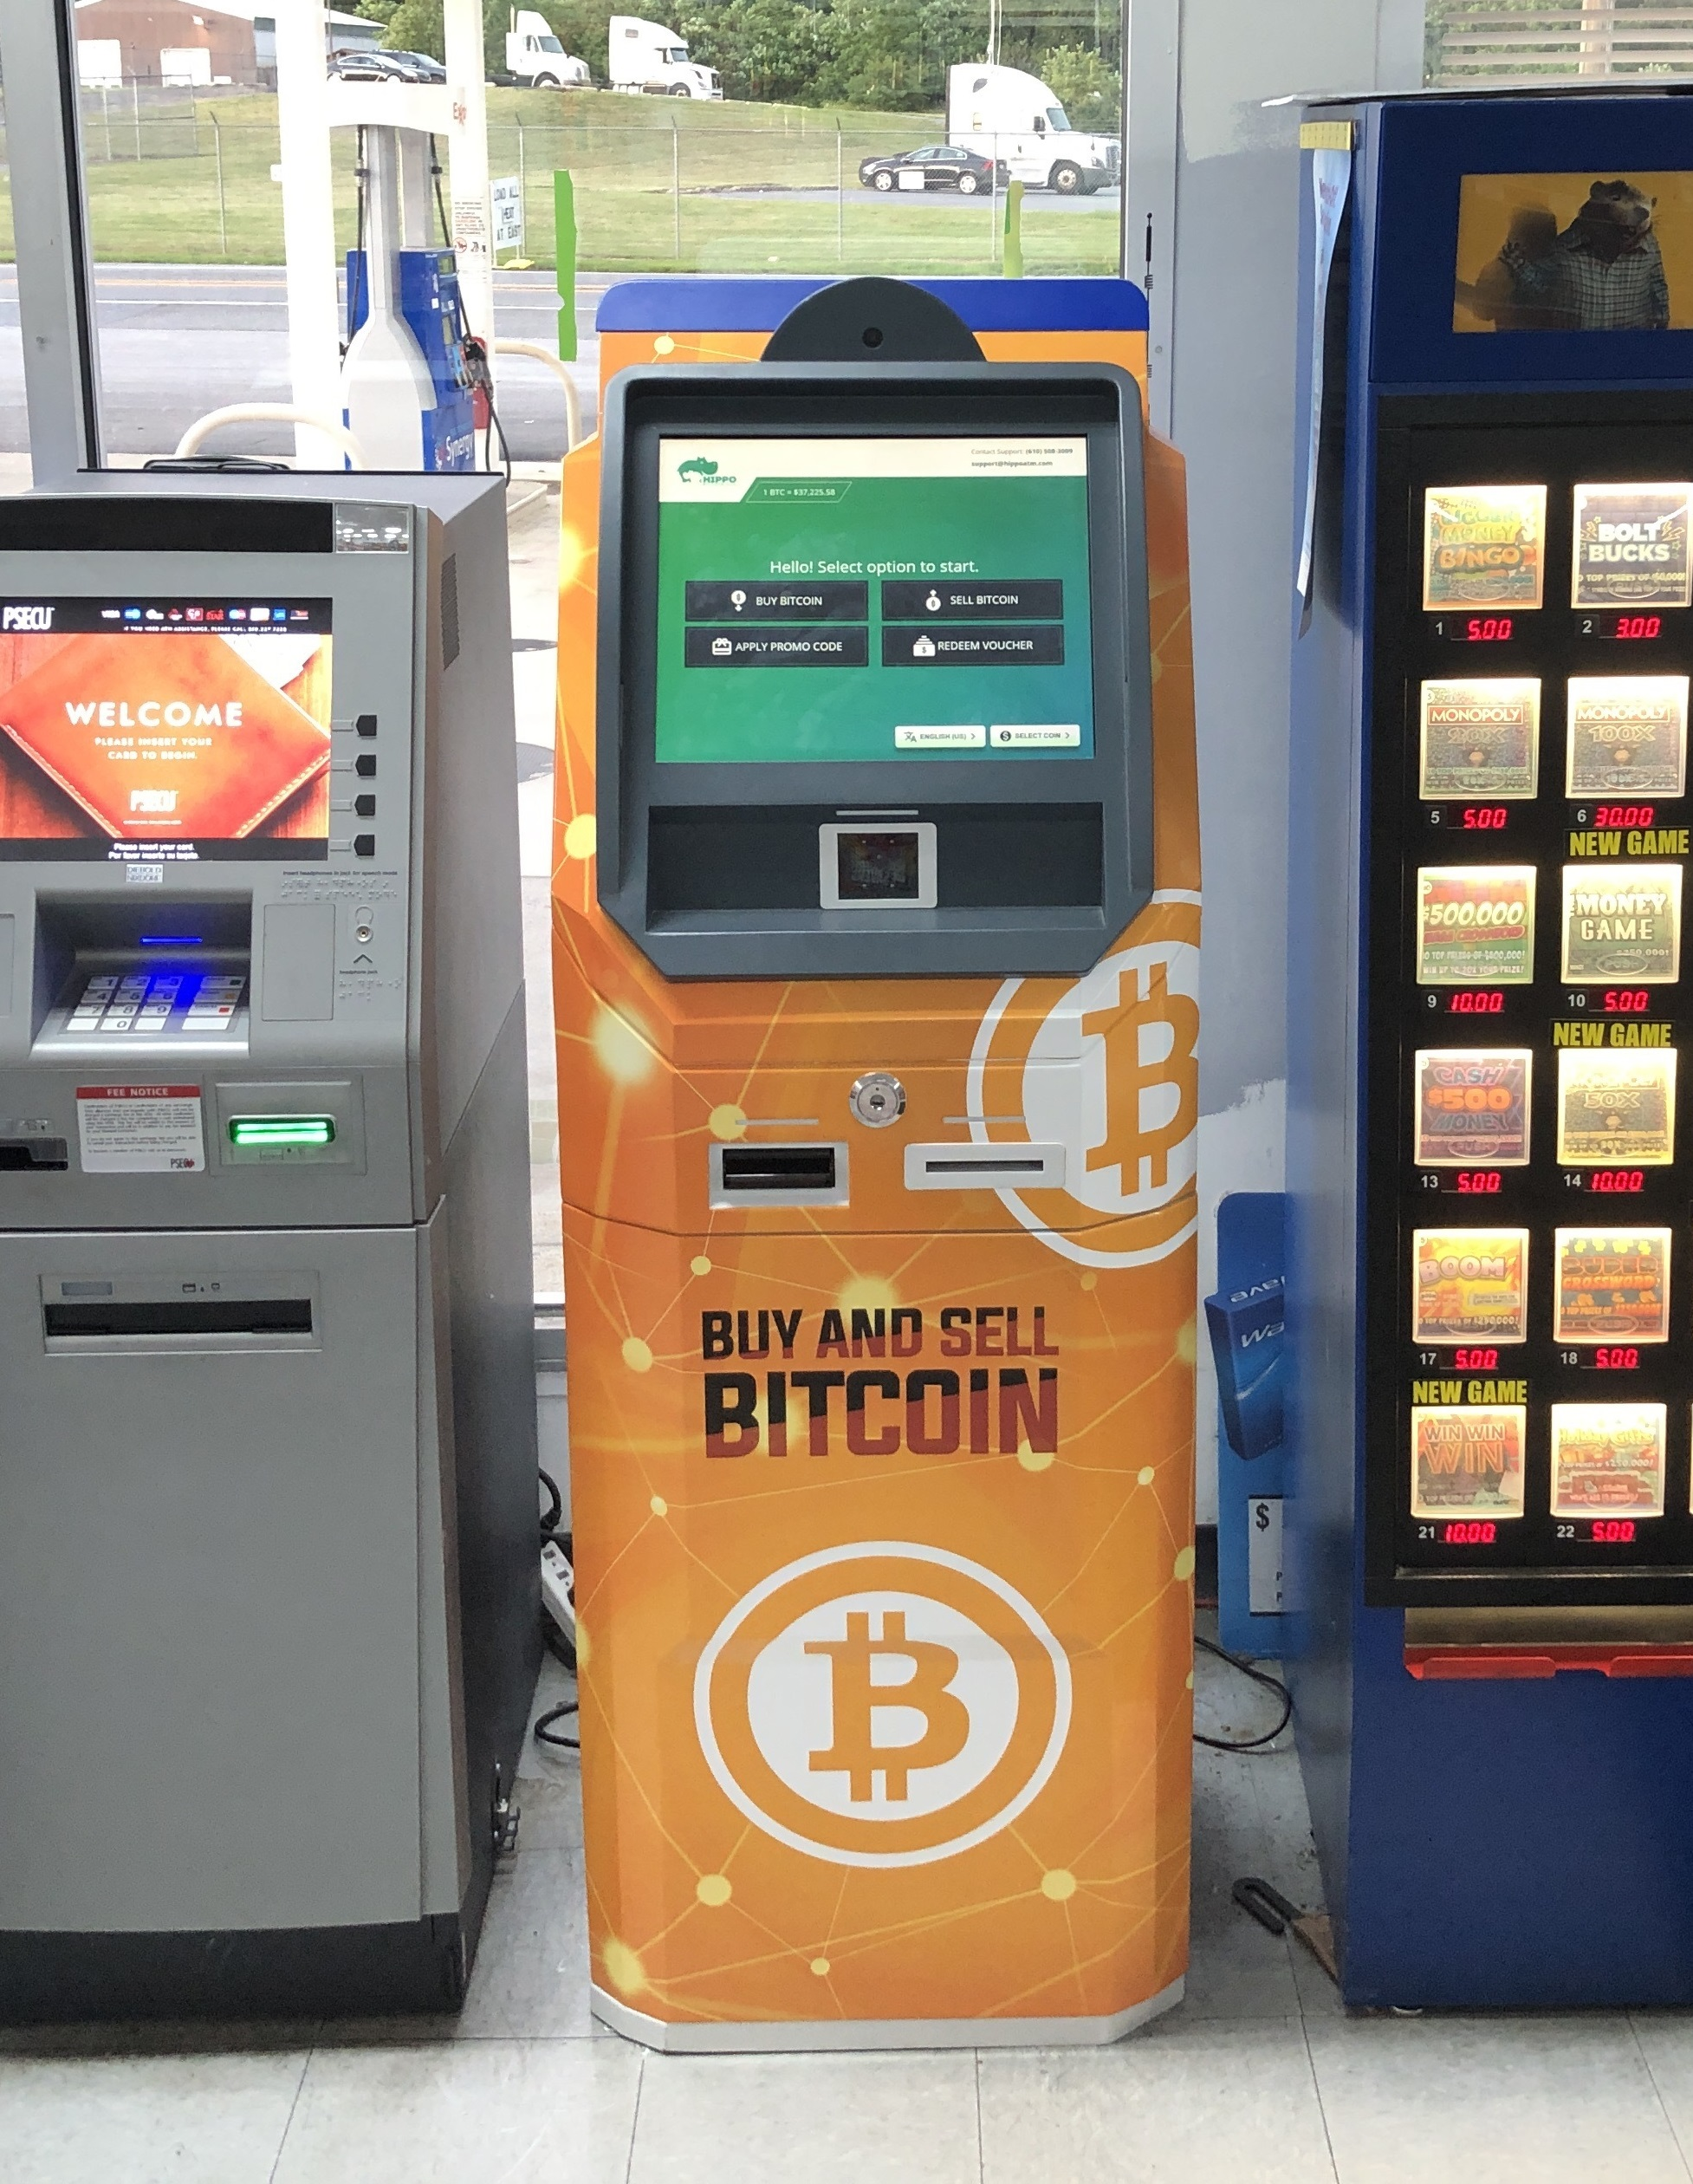 Bitcoin ATM Middletown PA Exxon by Hippo Kiosks produced by ChainBytes